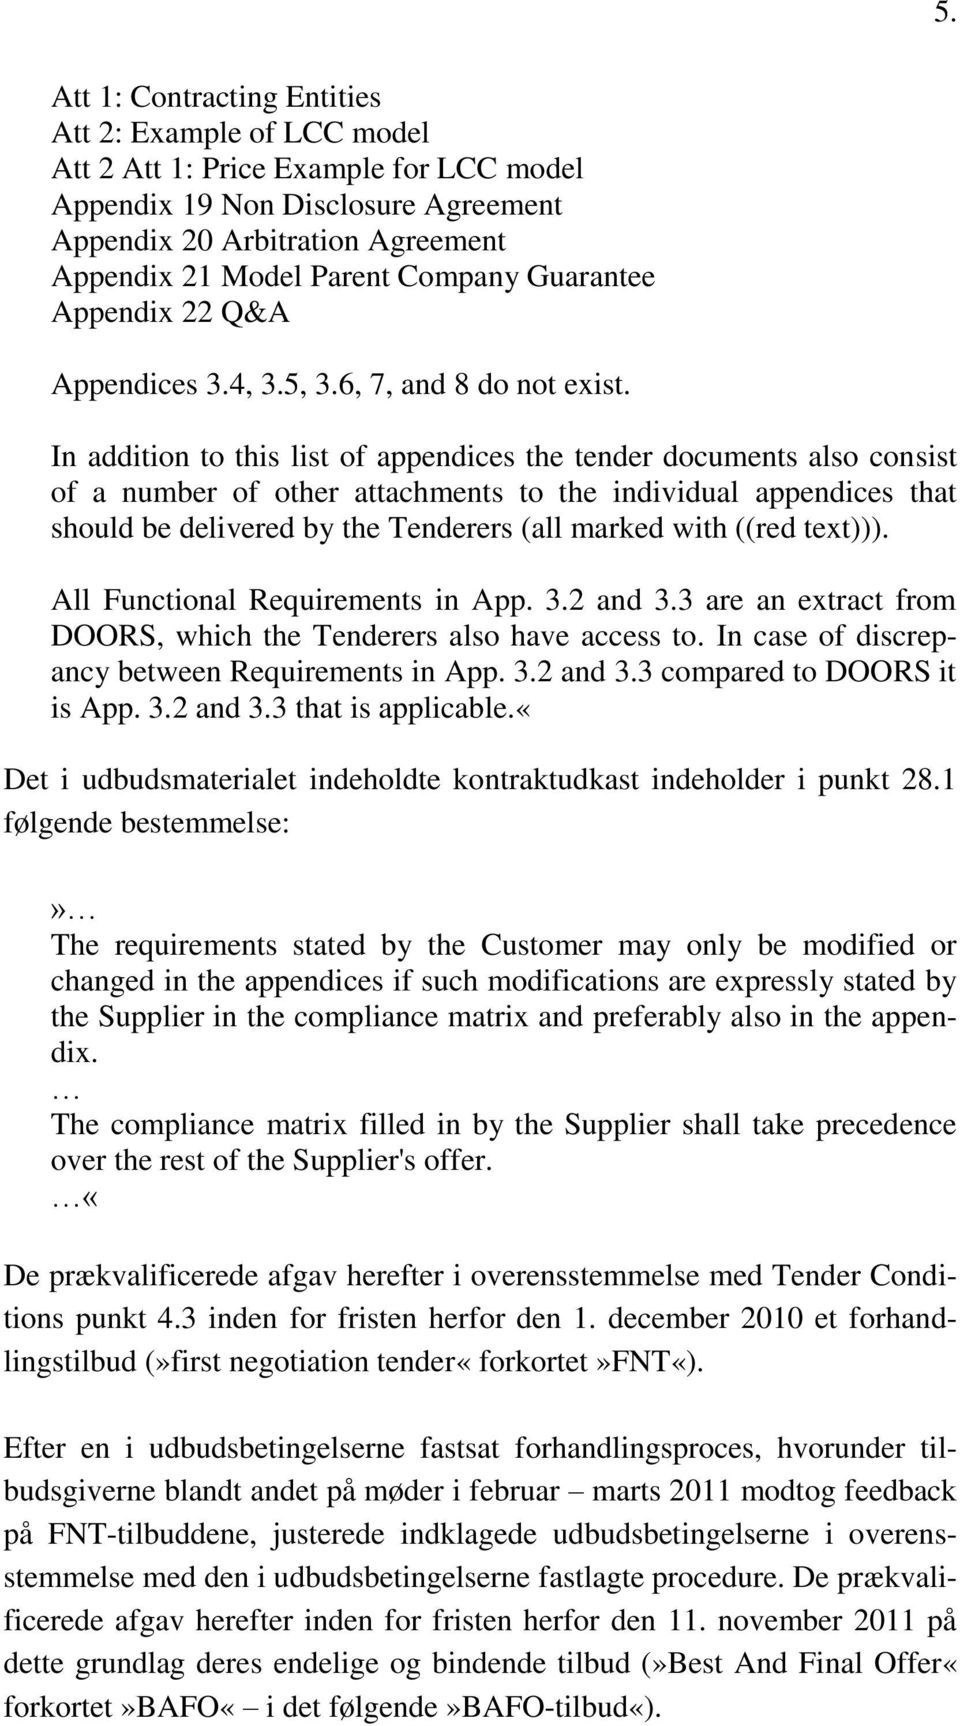 In addition to this list of appendices the tender documents also consist of a number of other attachments to the individual appendices that should be delivered by the Tenderers (all marked with ((red